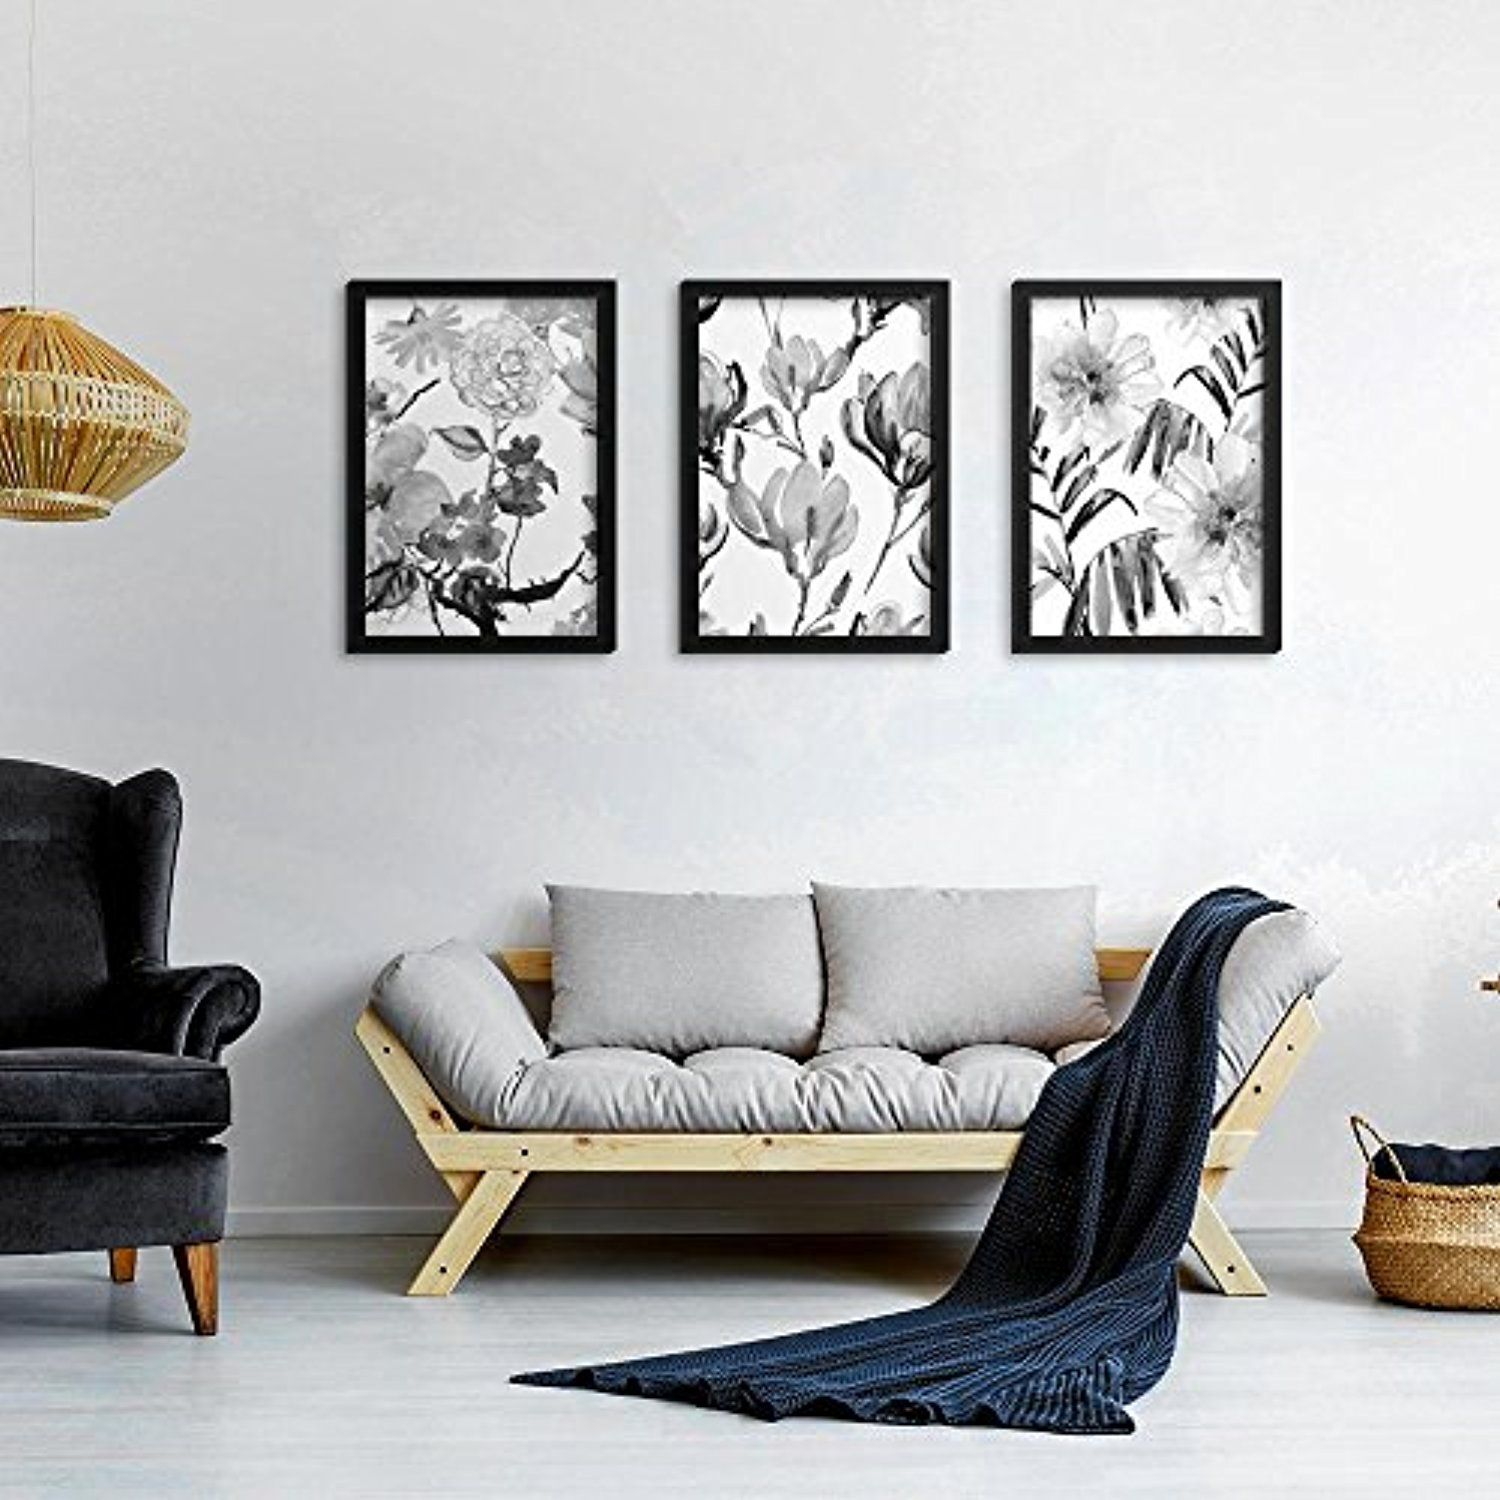 Wall Art Prints And Posters Set Of 3 Bloom Poster Set Inspirational Art Prints 3 Pcs Framed